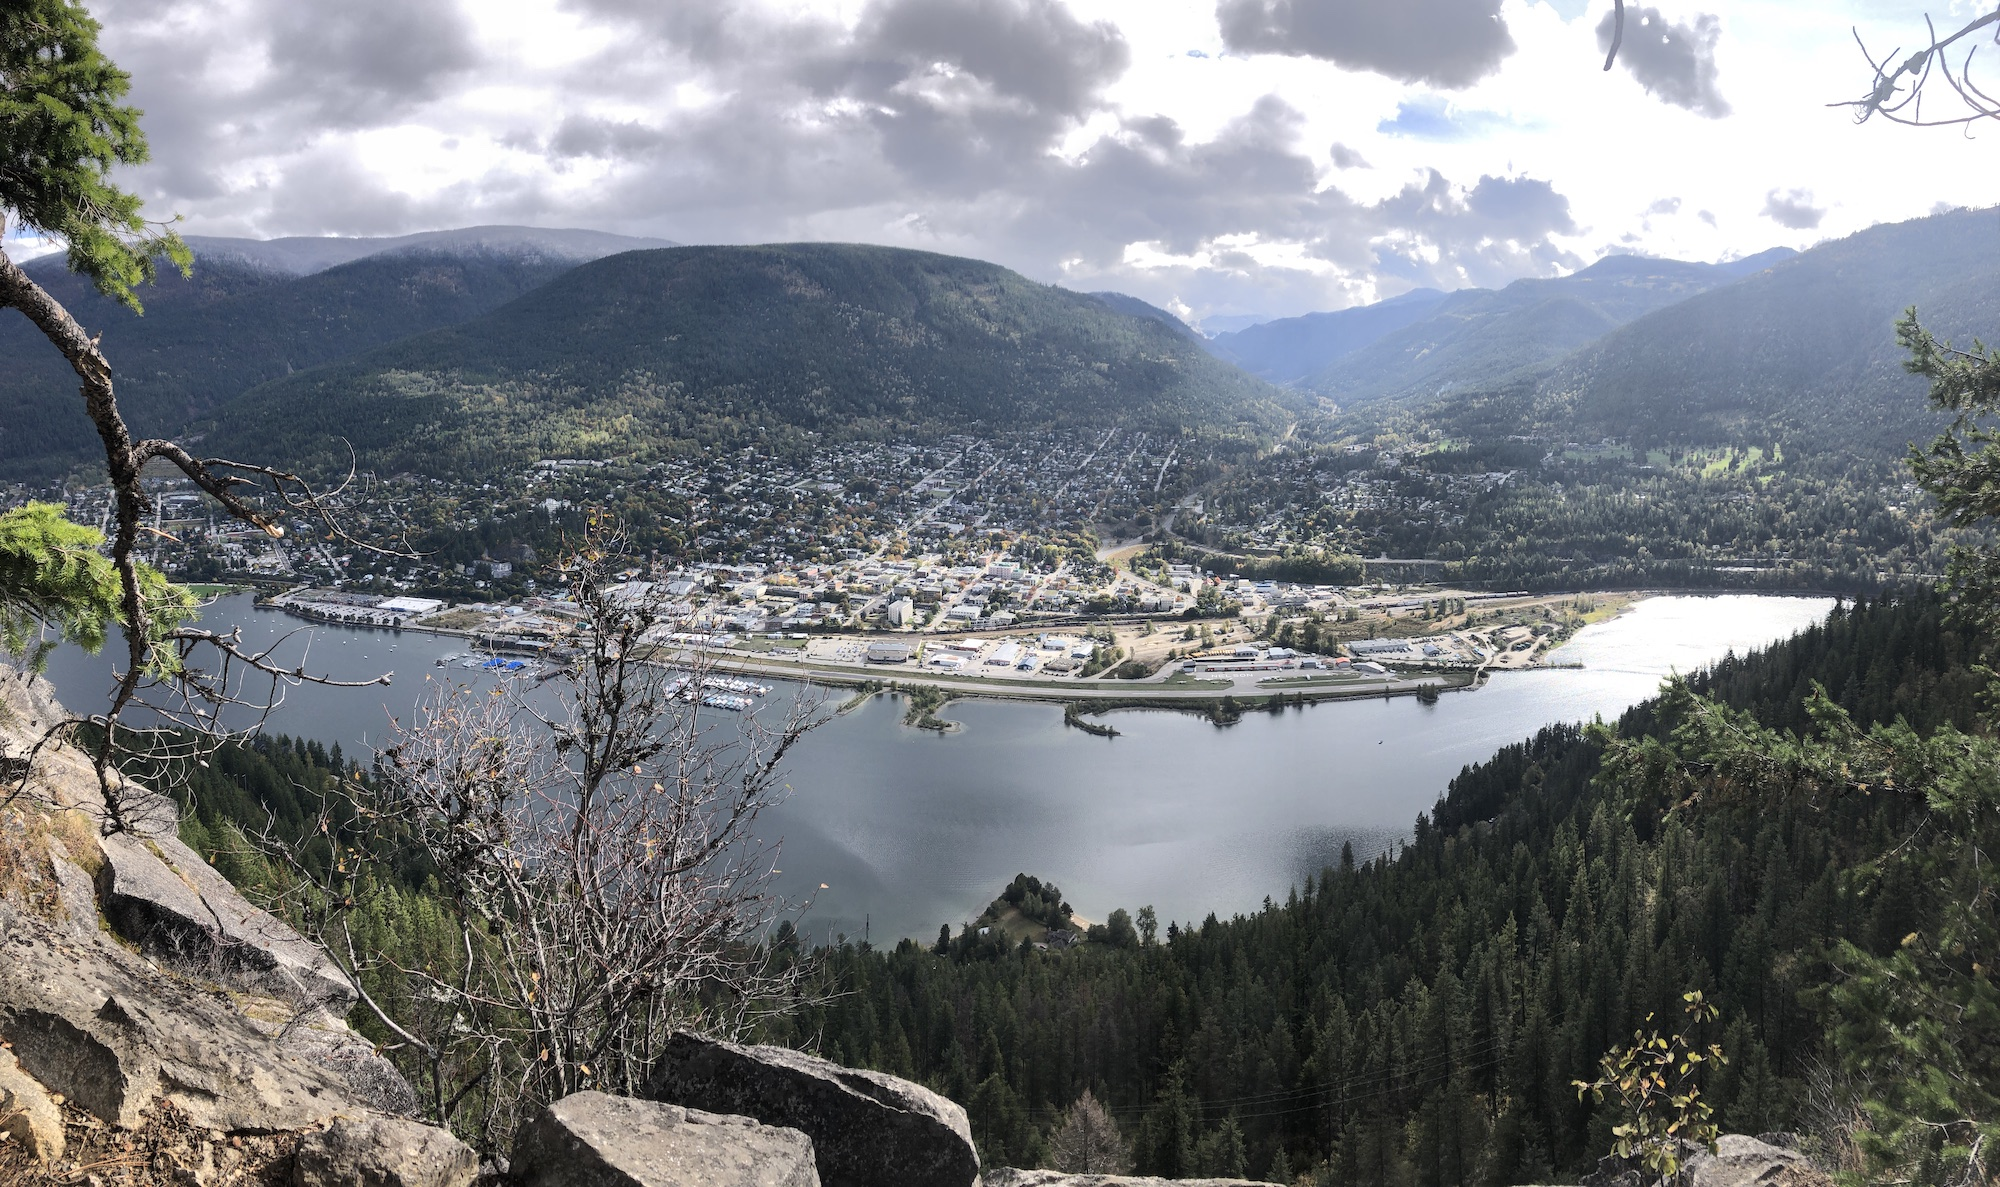 The town of Nelson from Pulpit Rock hike across Kootenay Lake.